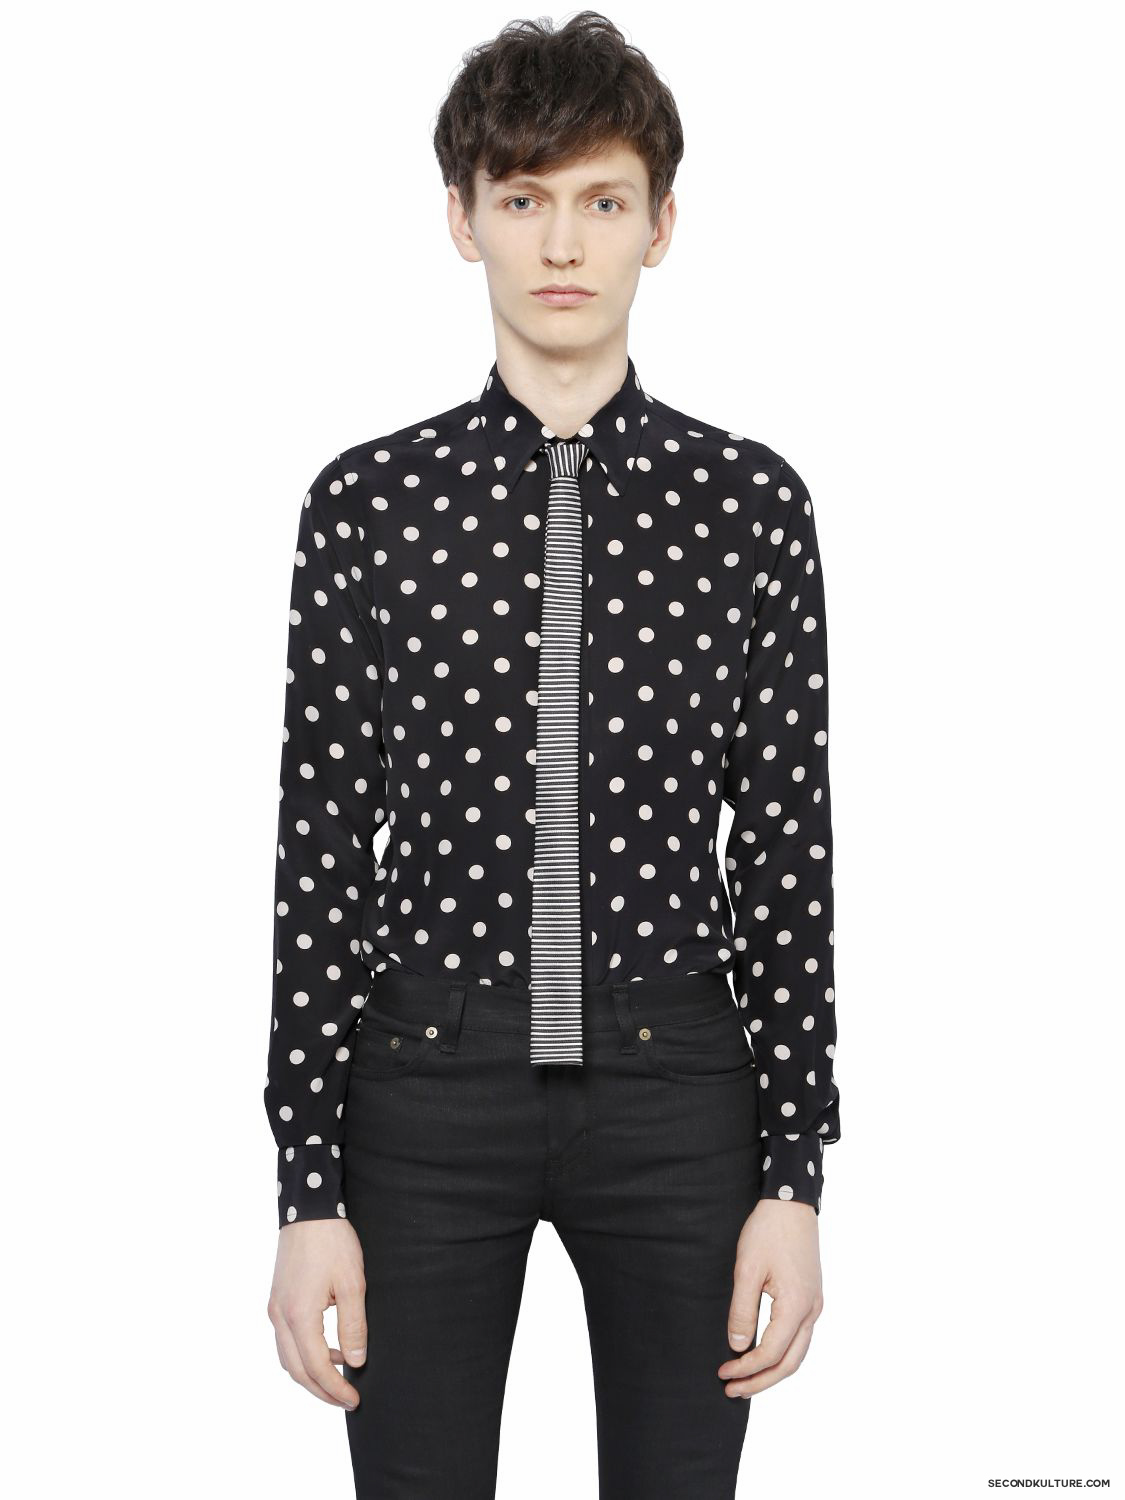 Saint-Laurent-Black-Contrast-Polka-Dot-Silk-Crepe-De-Chine-Shirt-Fall-Winter-2015-1